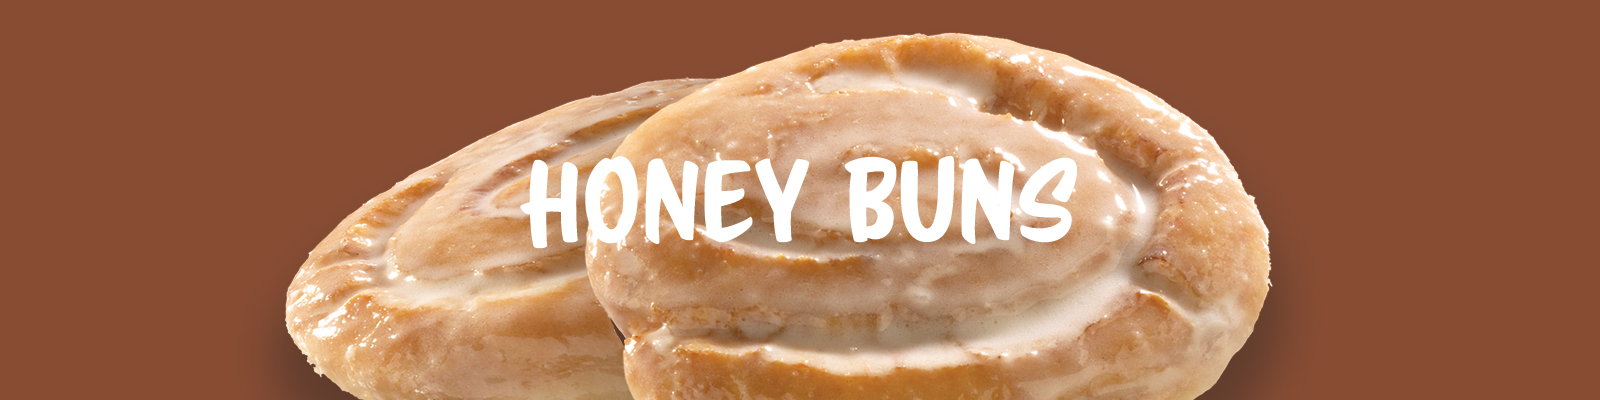 Honey Buns